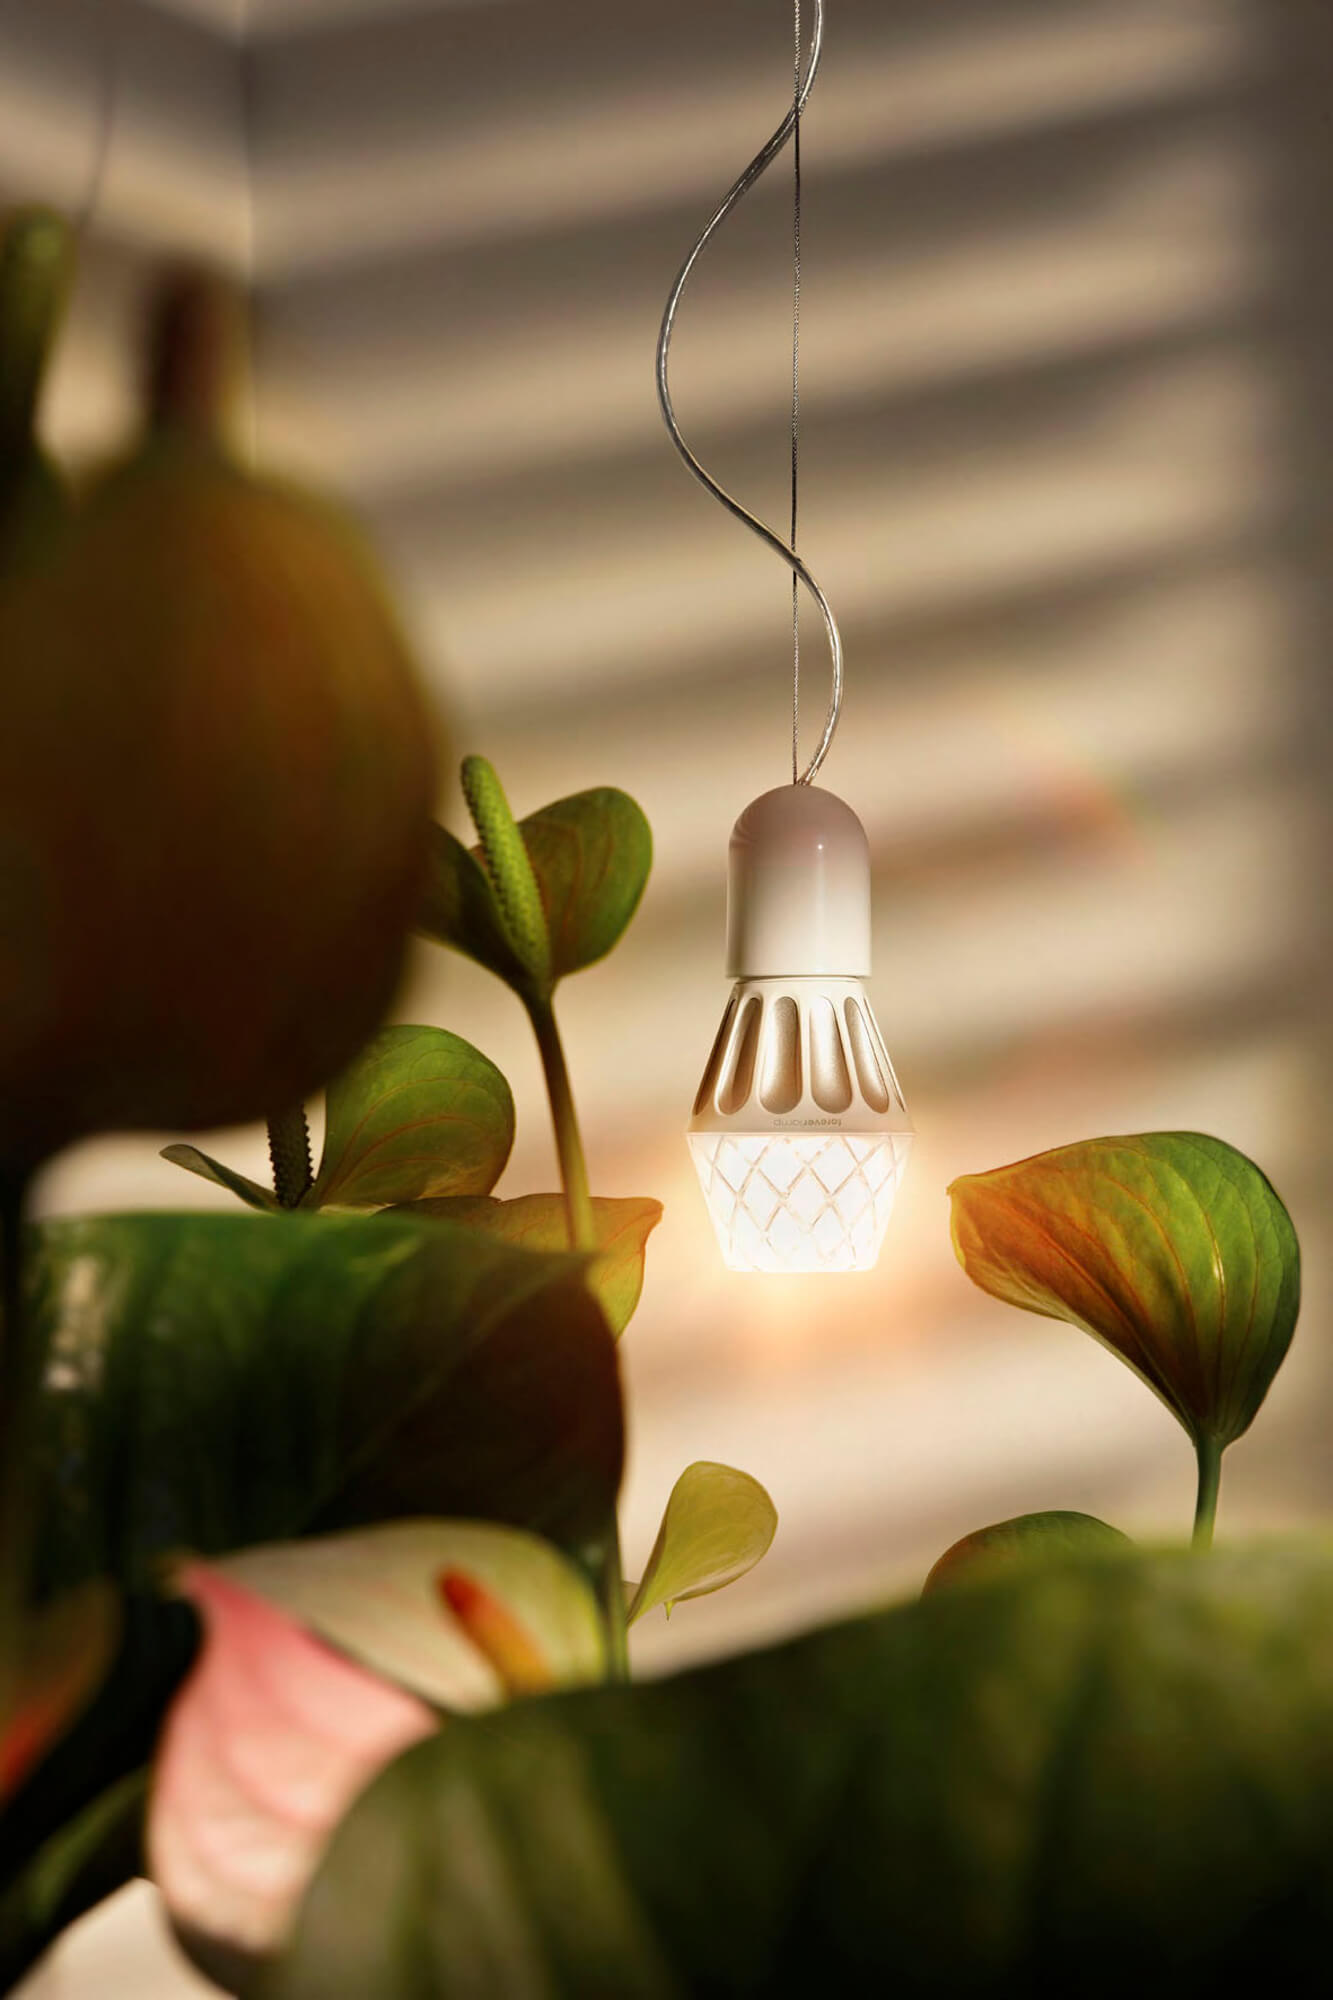 Alessilux-Vienna-LED-light-bulb-silver-hanging.jpg